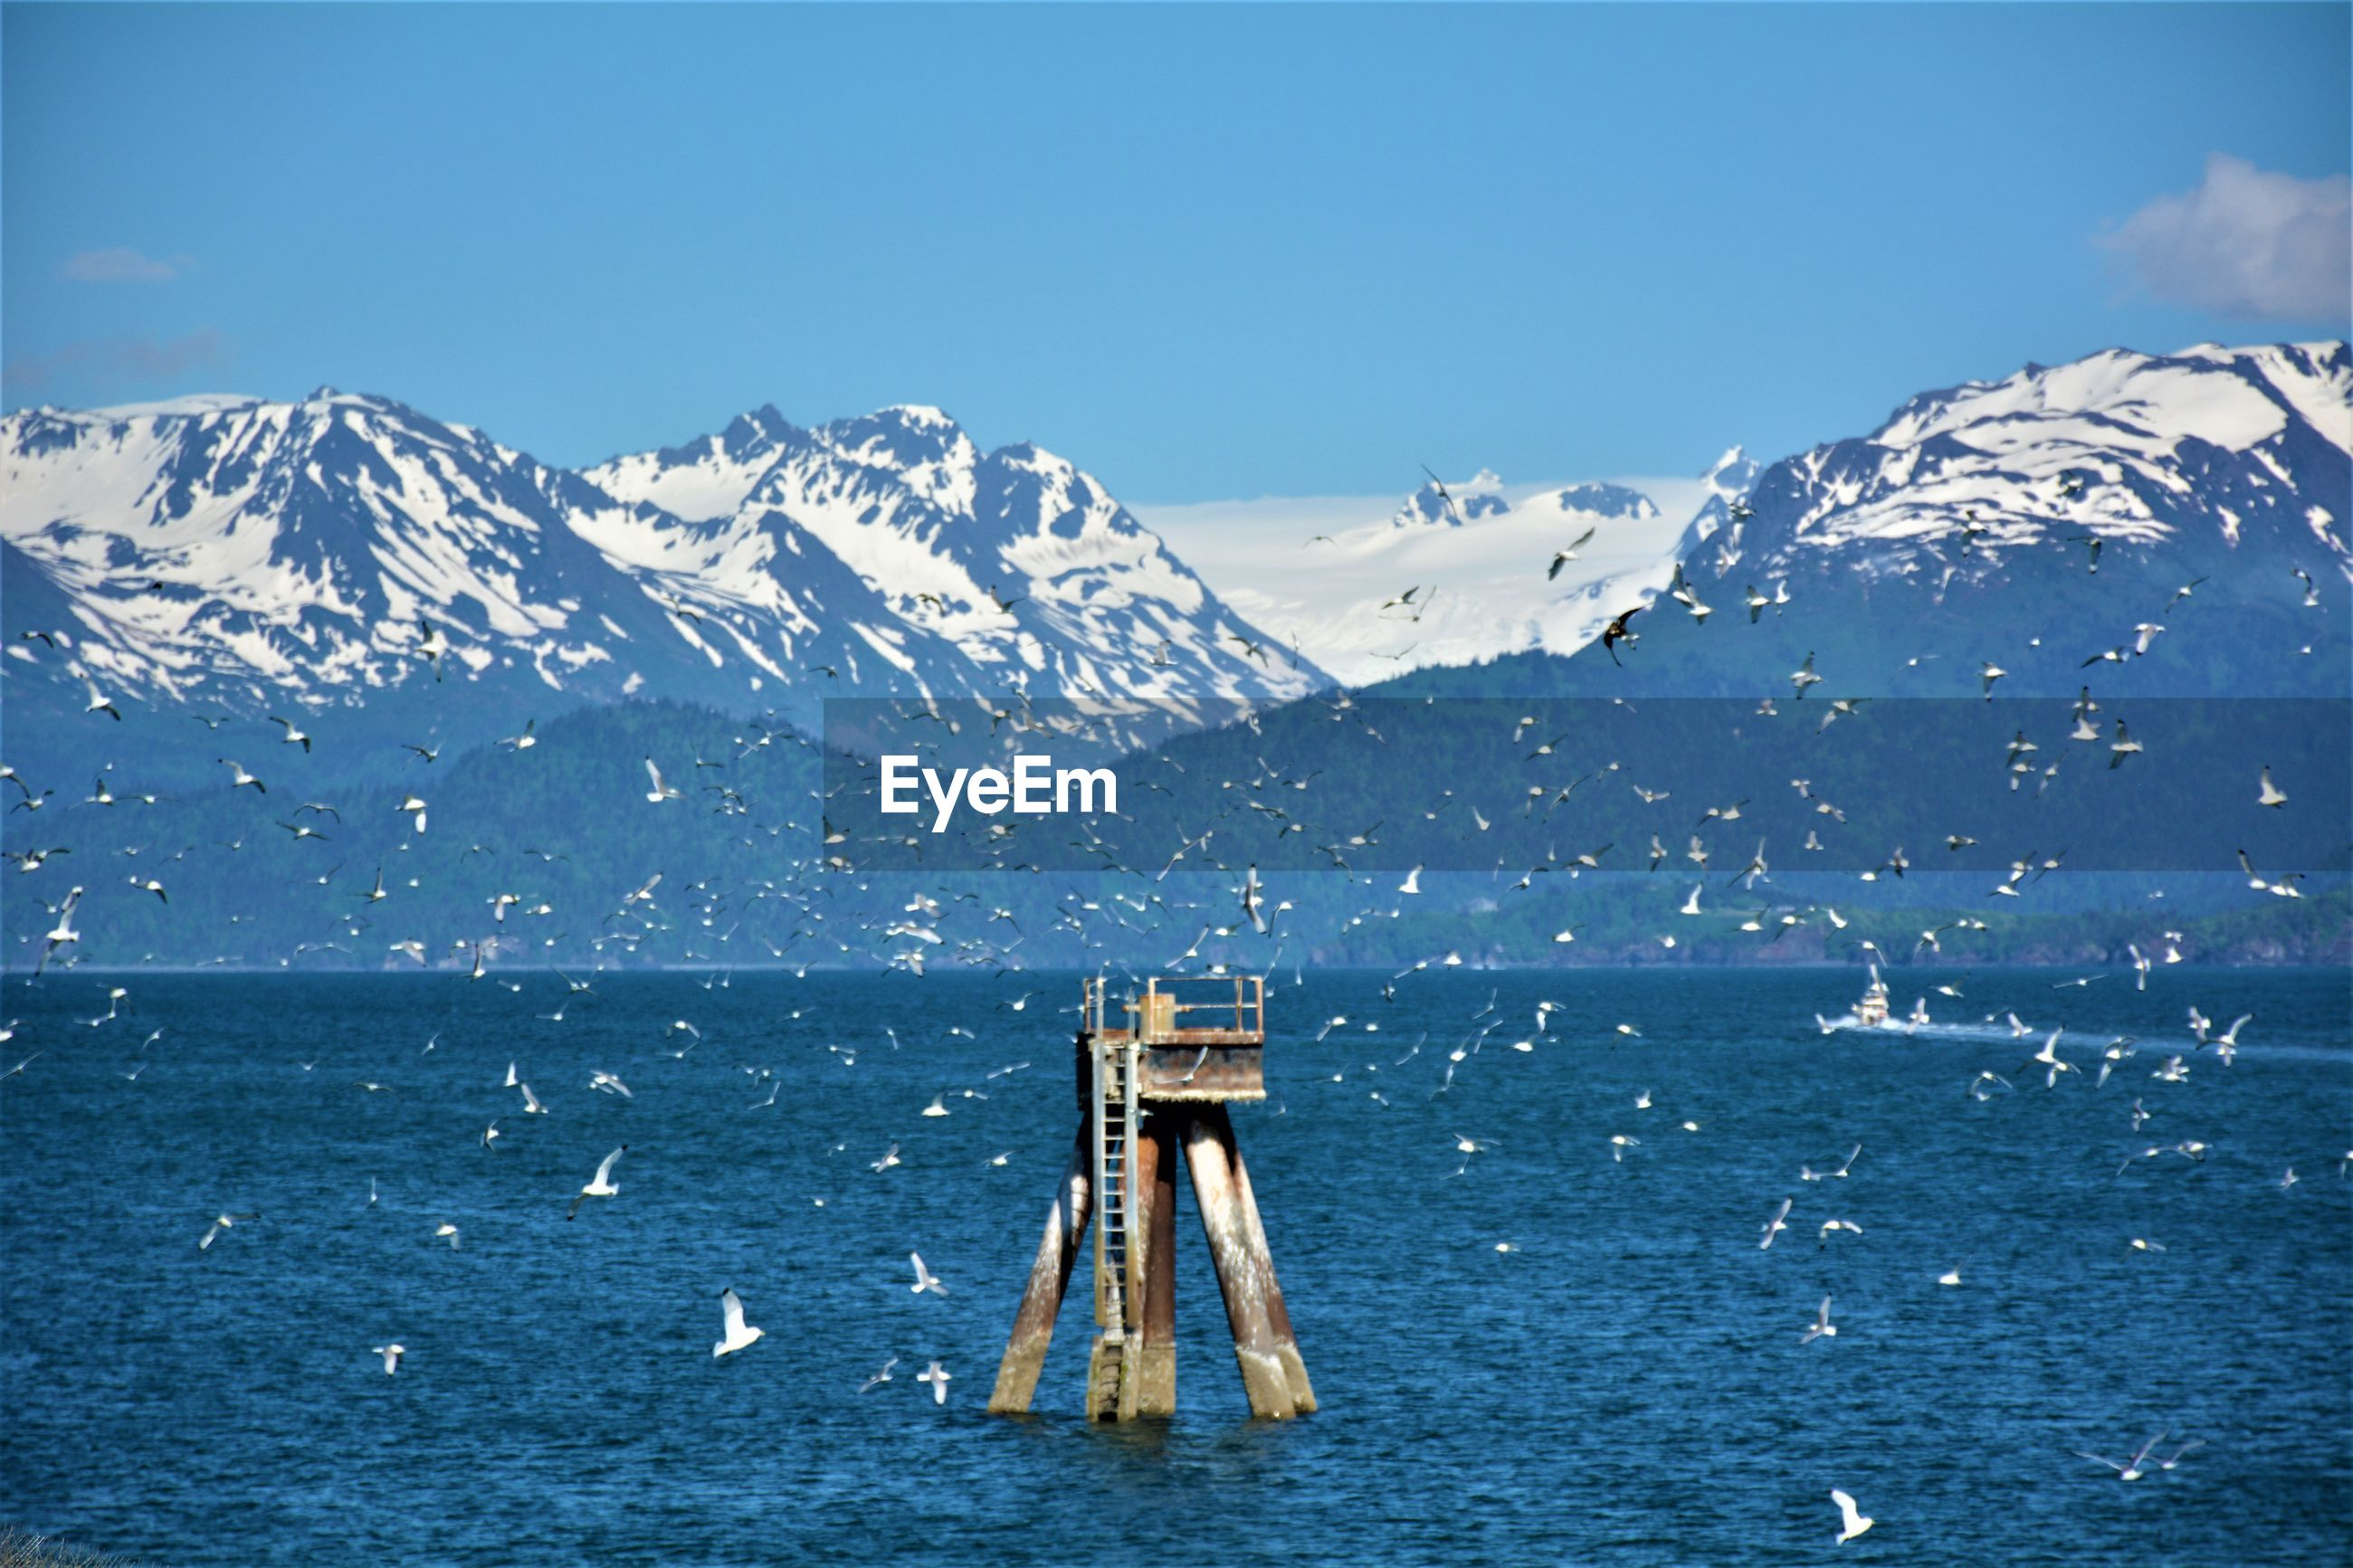 SCENIC VIEW OF SEA BY SNOWCAPPED MOUNTAINS AGAINST BLUE SKY